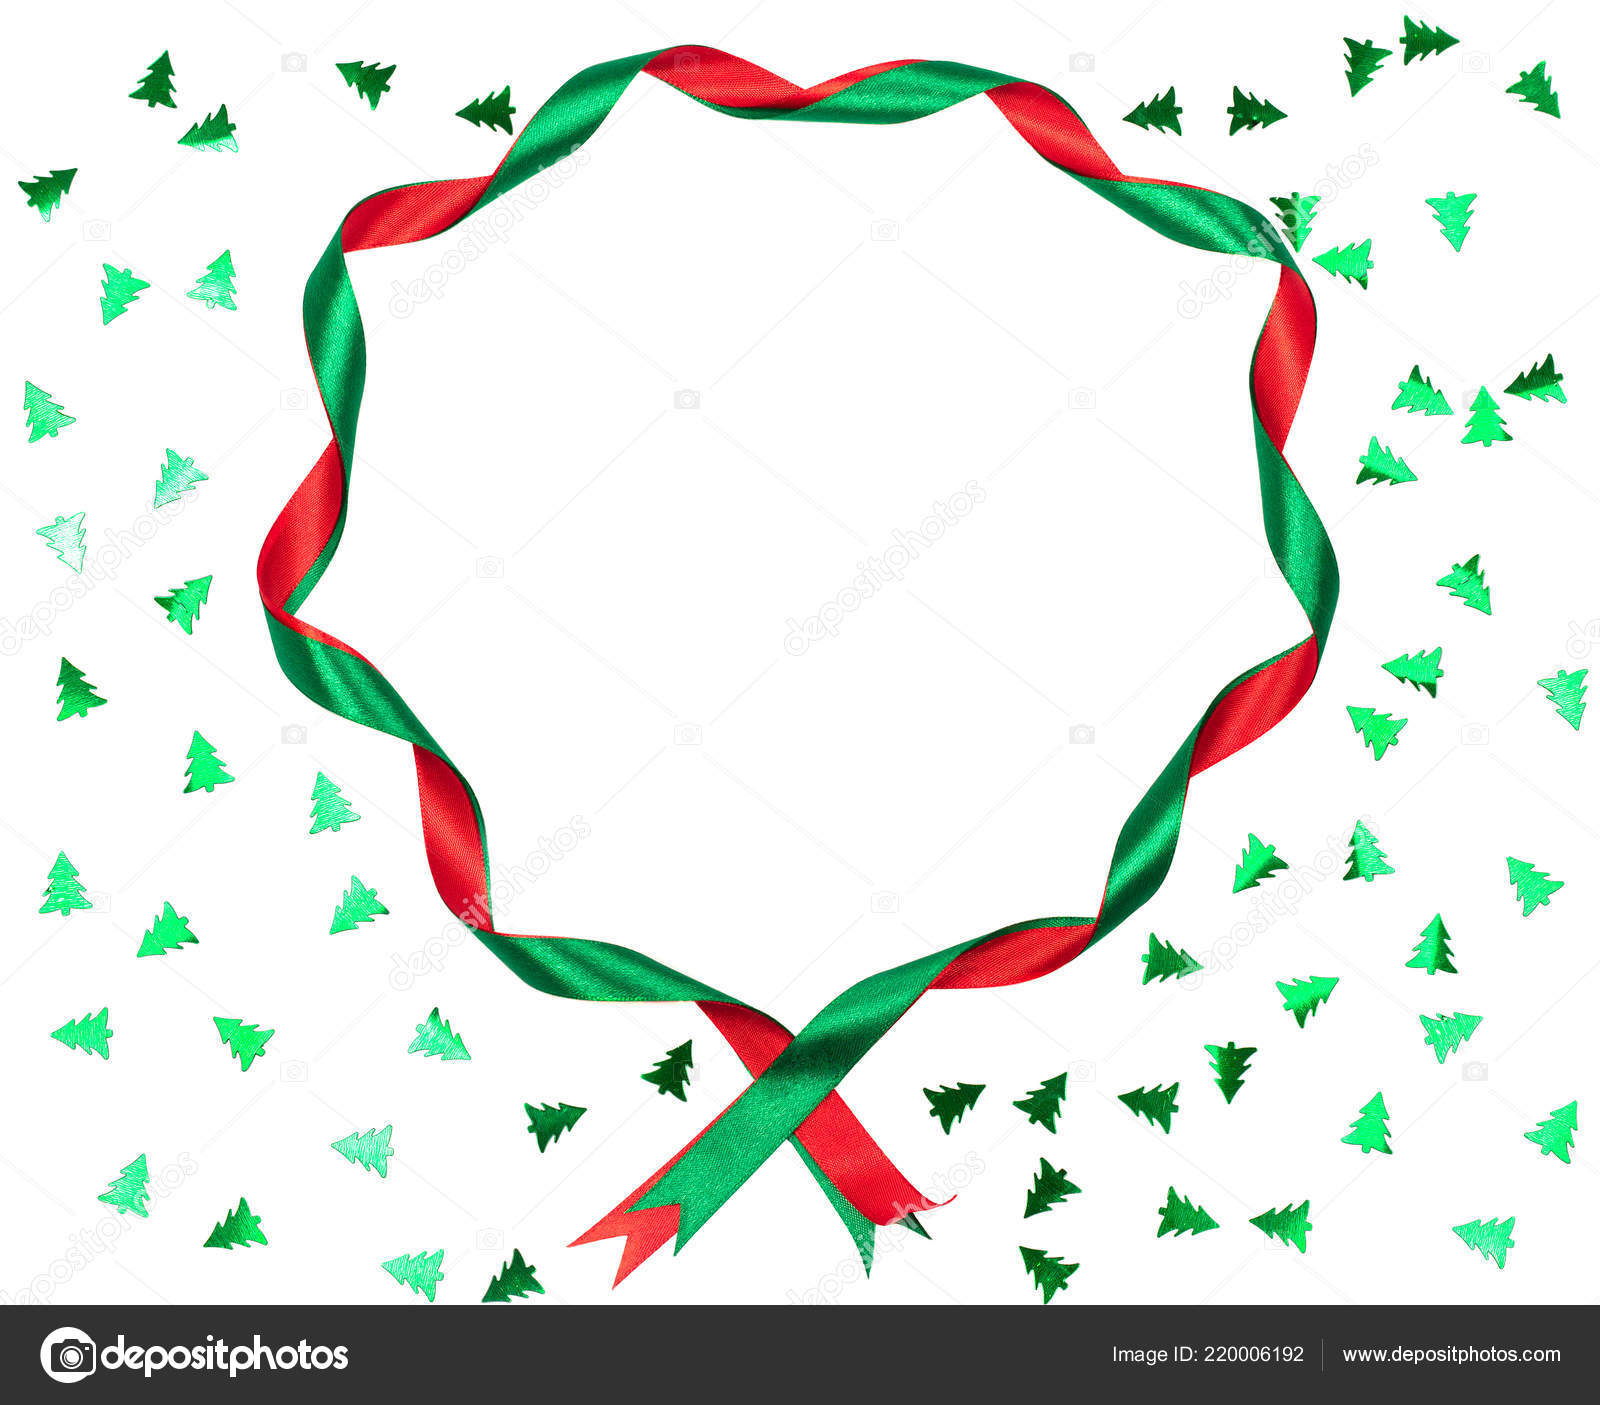 ribbons on white background with christmas tree shaped confetti perfect festive backdrop for your design new year and christmas holidays concept